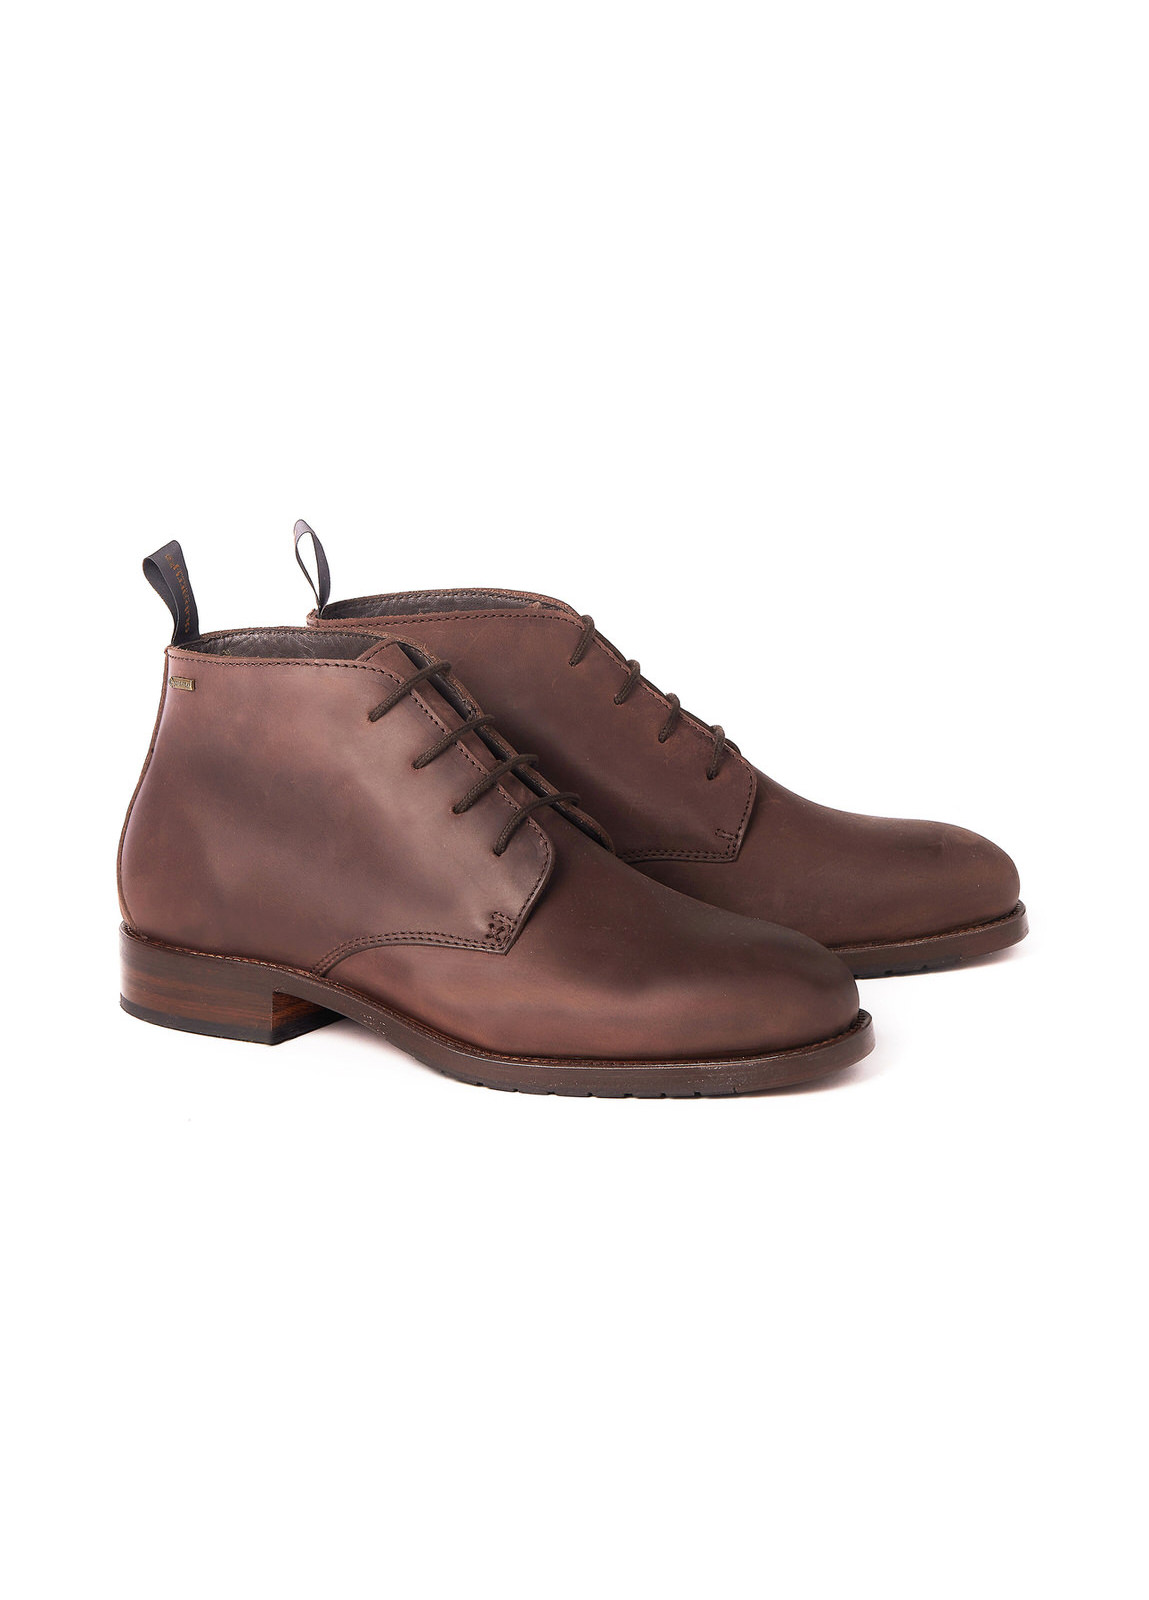 Kilgarvan_Lace-up_Boot_Old_Rum_Image_1